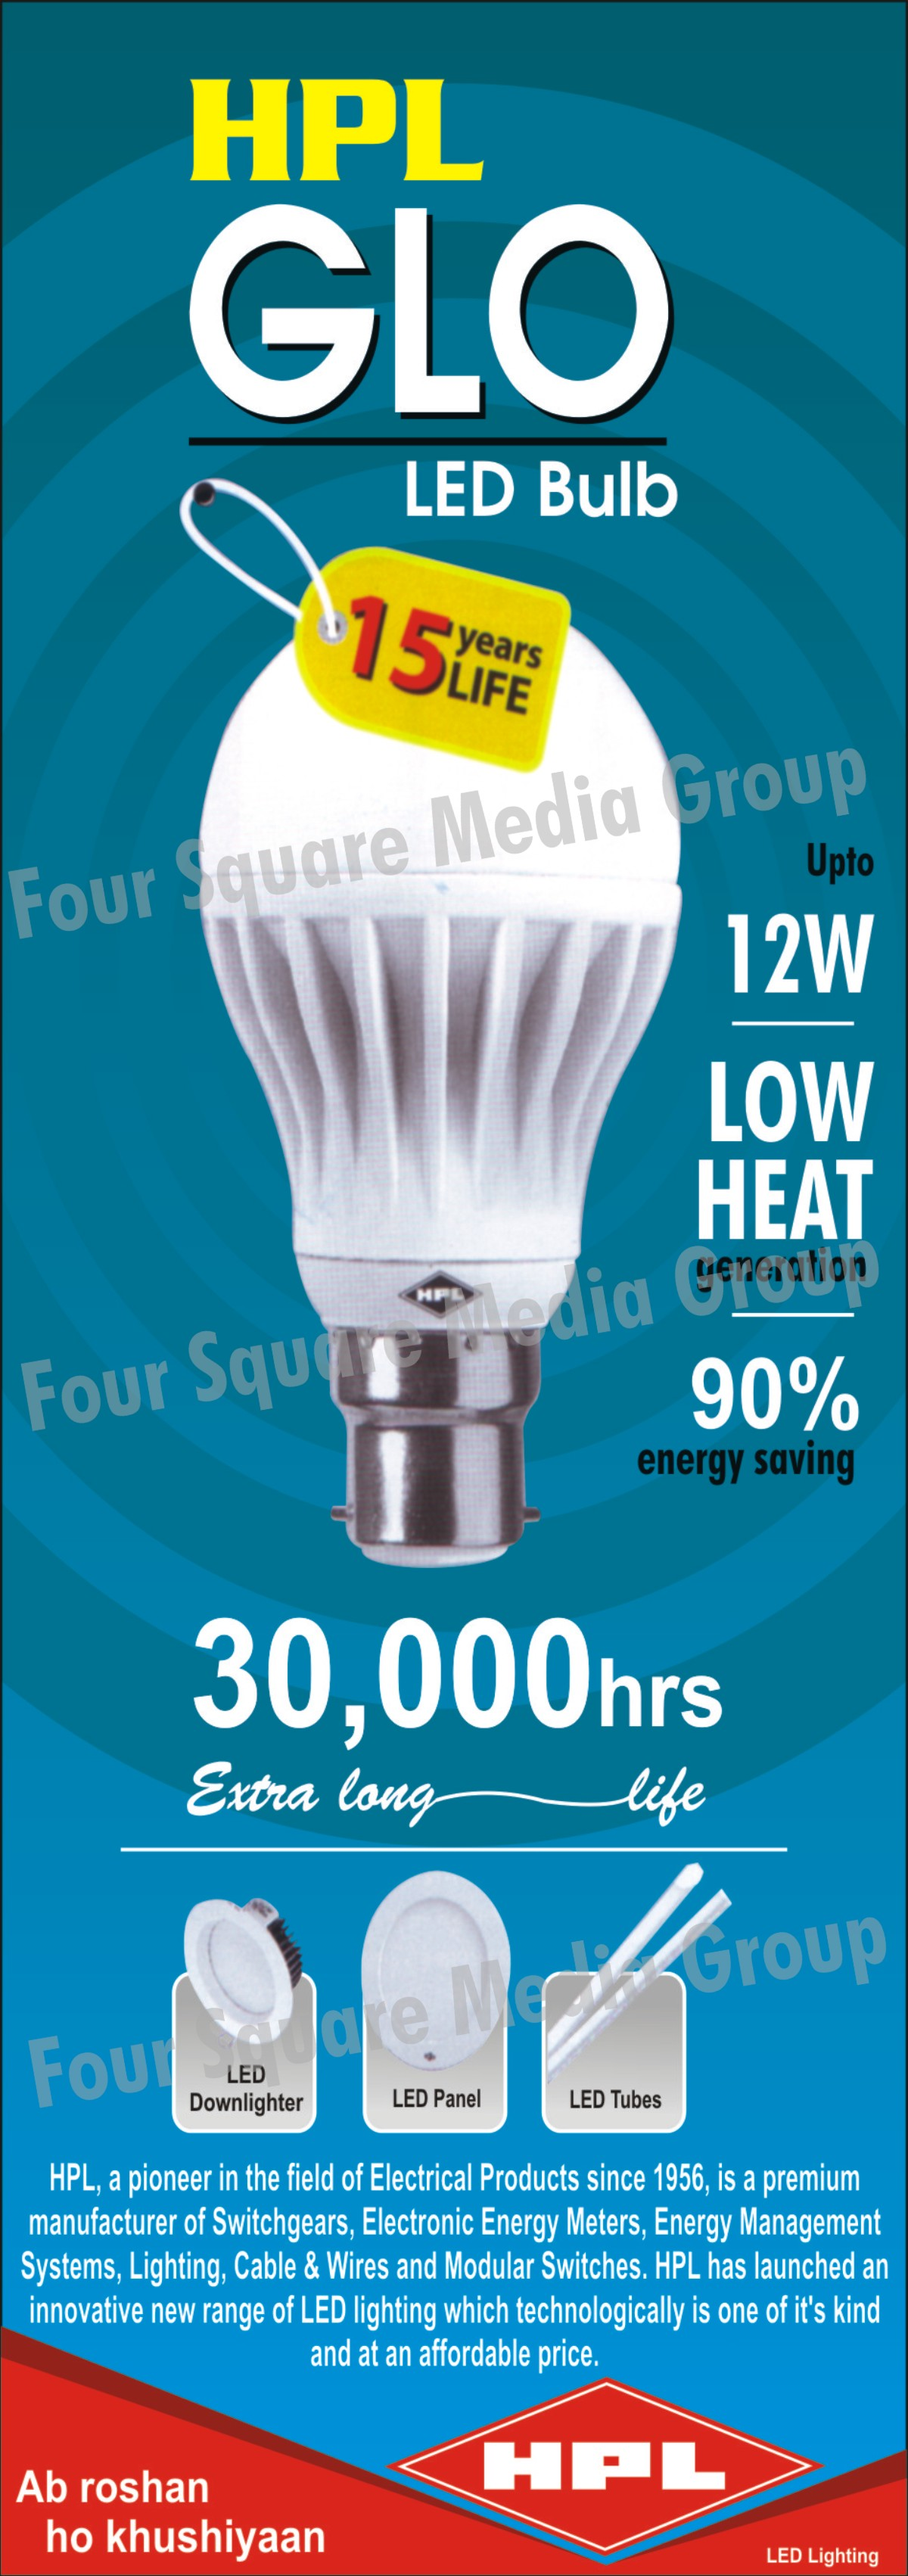 Led Down lighter, Led Panel lights, Led Tubes lights, Switchgear, Electronic Energy Meters, Energy Management Systems, Electric Cables, Electric Wires, Modular Switches, Led Lights, Led Bulbs